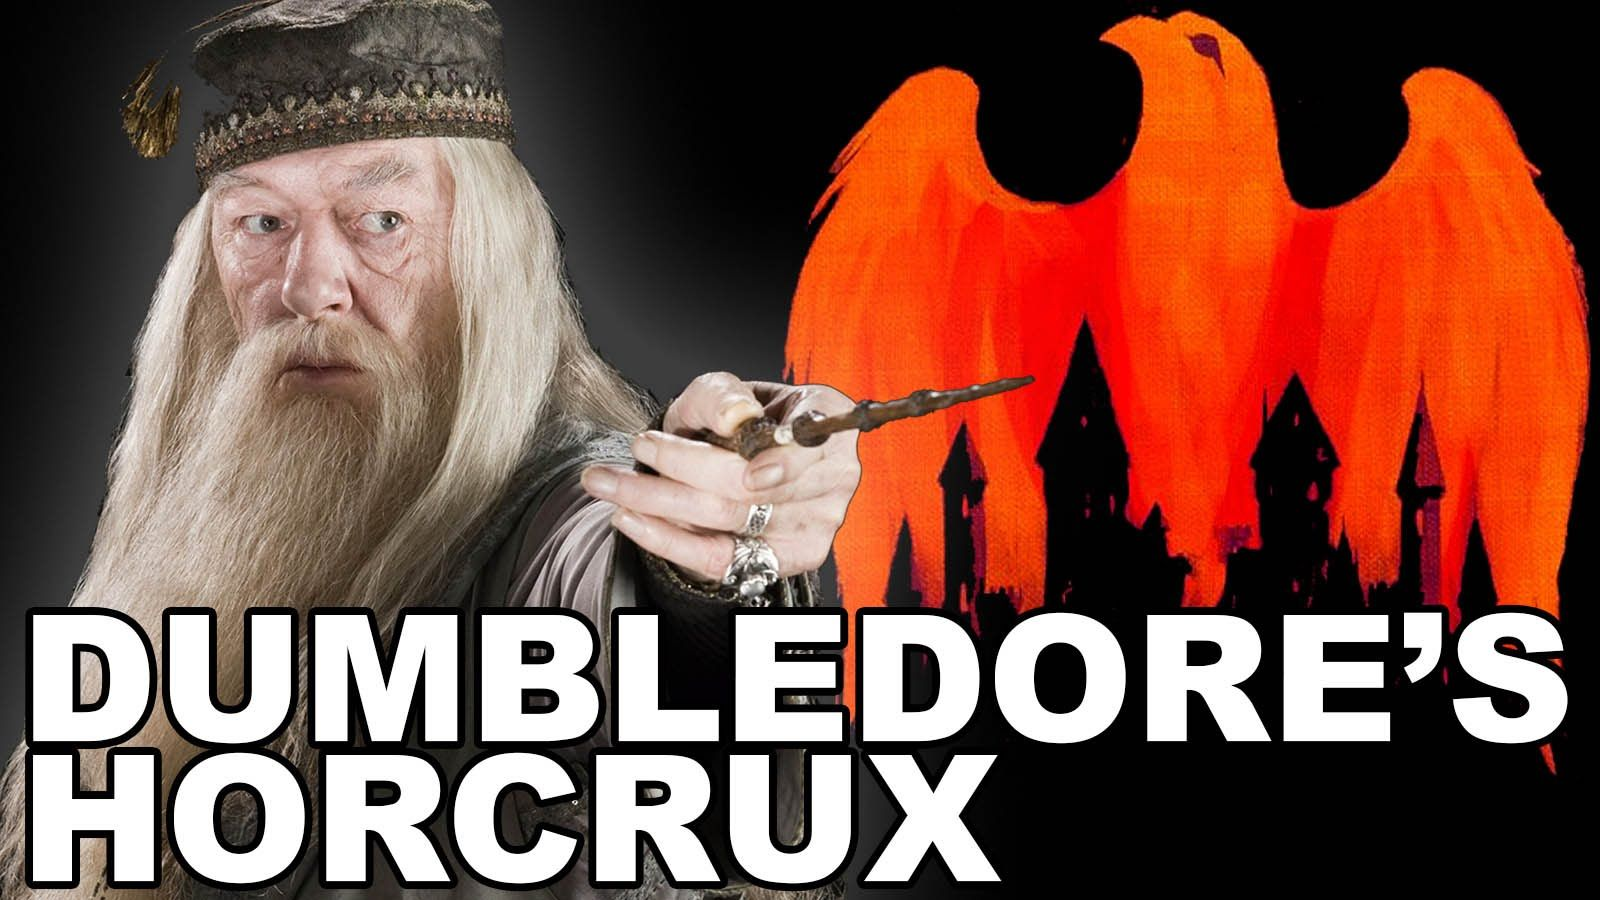 Harry Potter Theory Dumbledore S Horcrux Harry Potter Theories Harry Potter Fan Theories Harry Potter